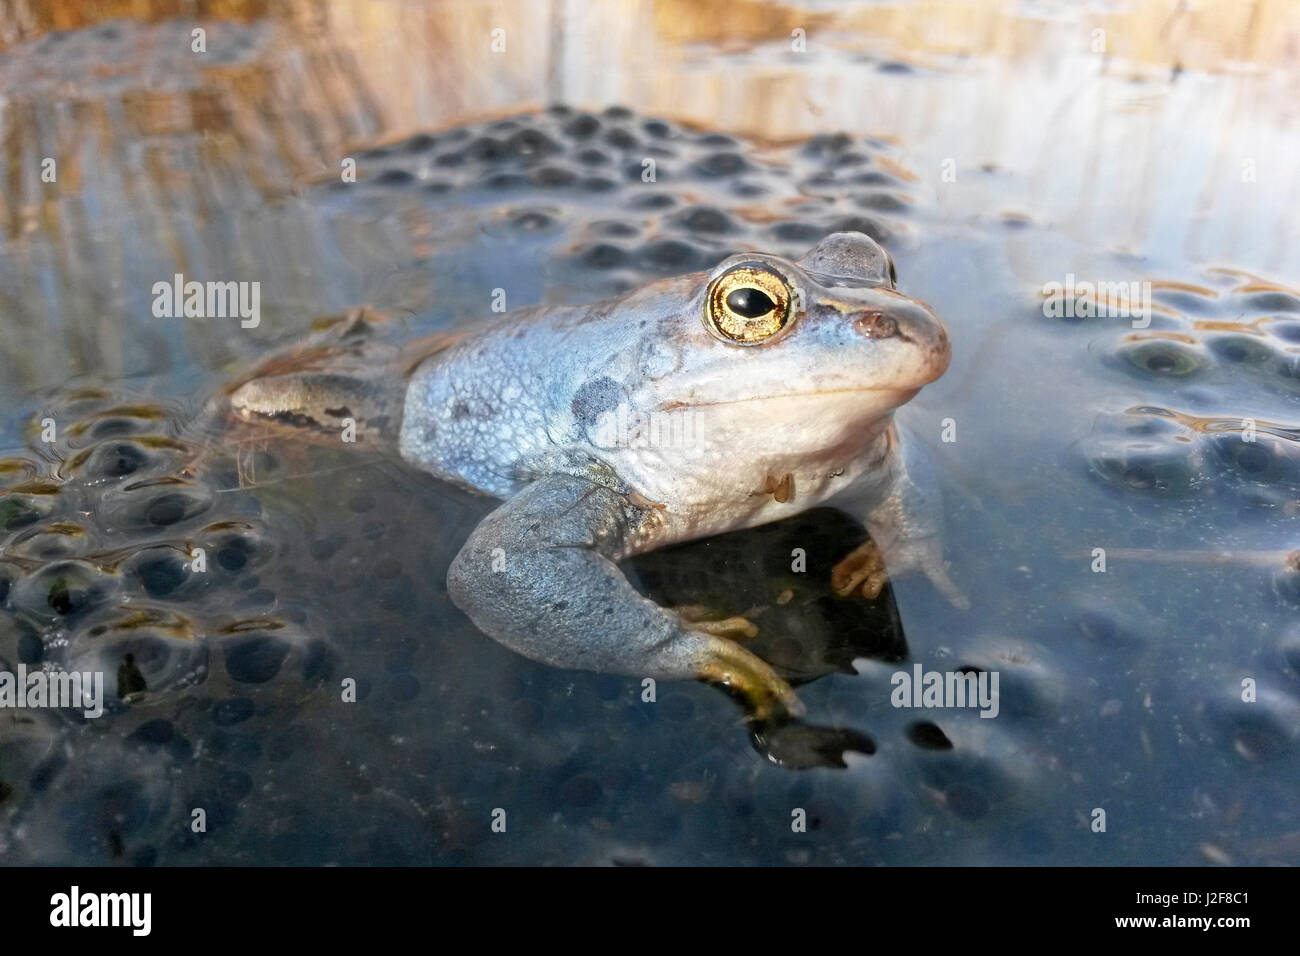 photo of blue male moor frog on frog spawn - Stock Image